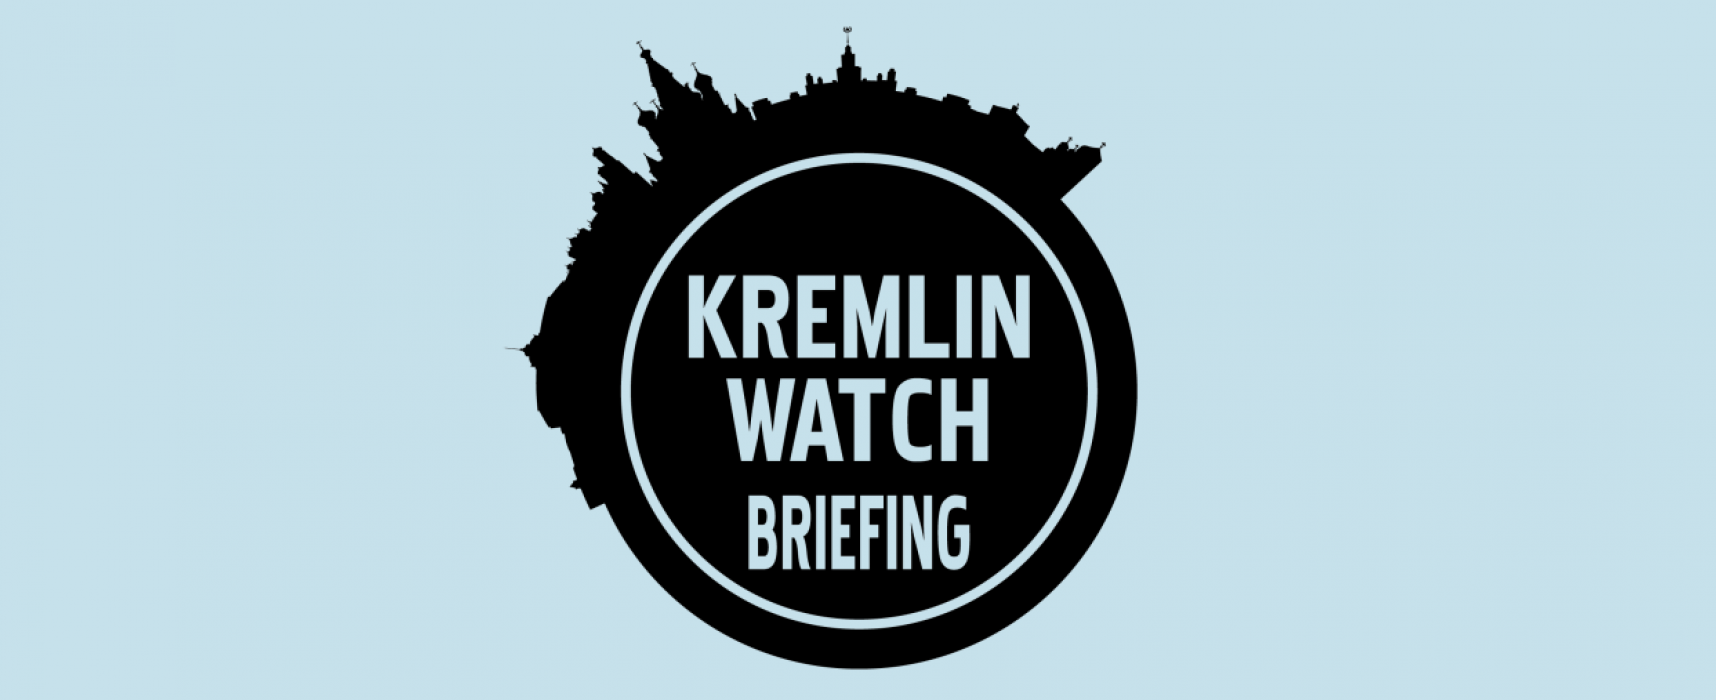 Kremlin Watch Briefing: NATO is allegedly brain-dead. What does the Kremlin think?